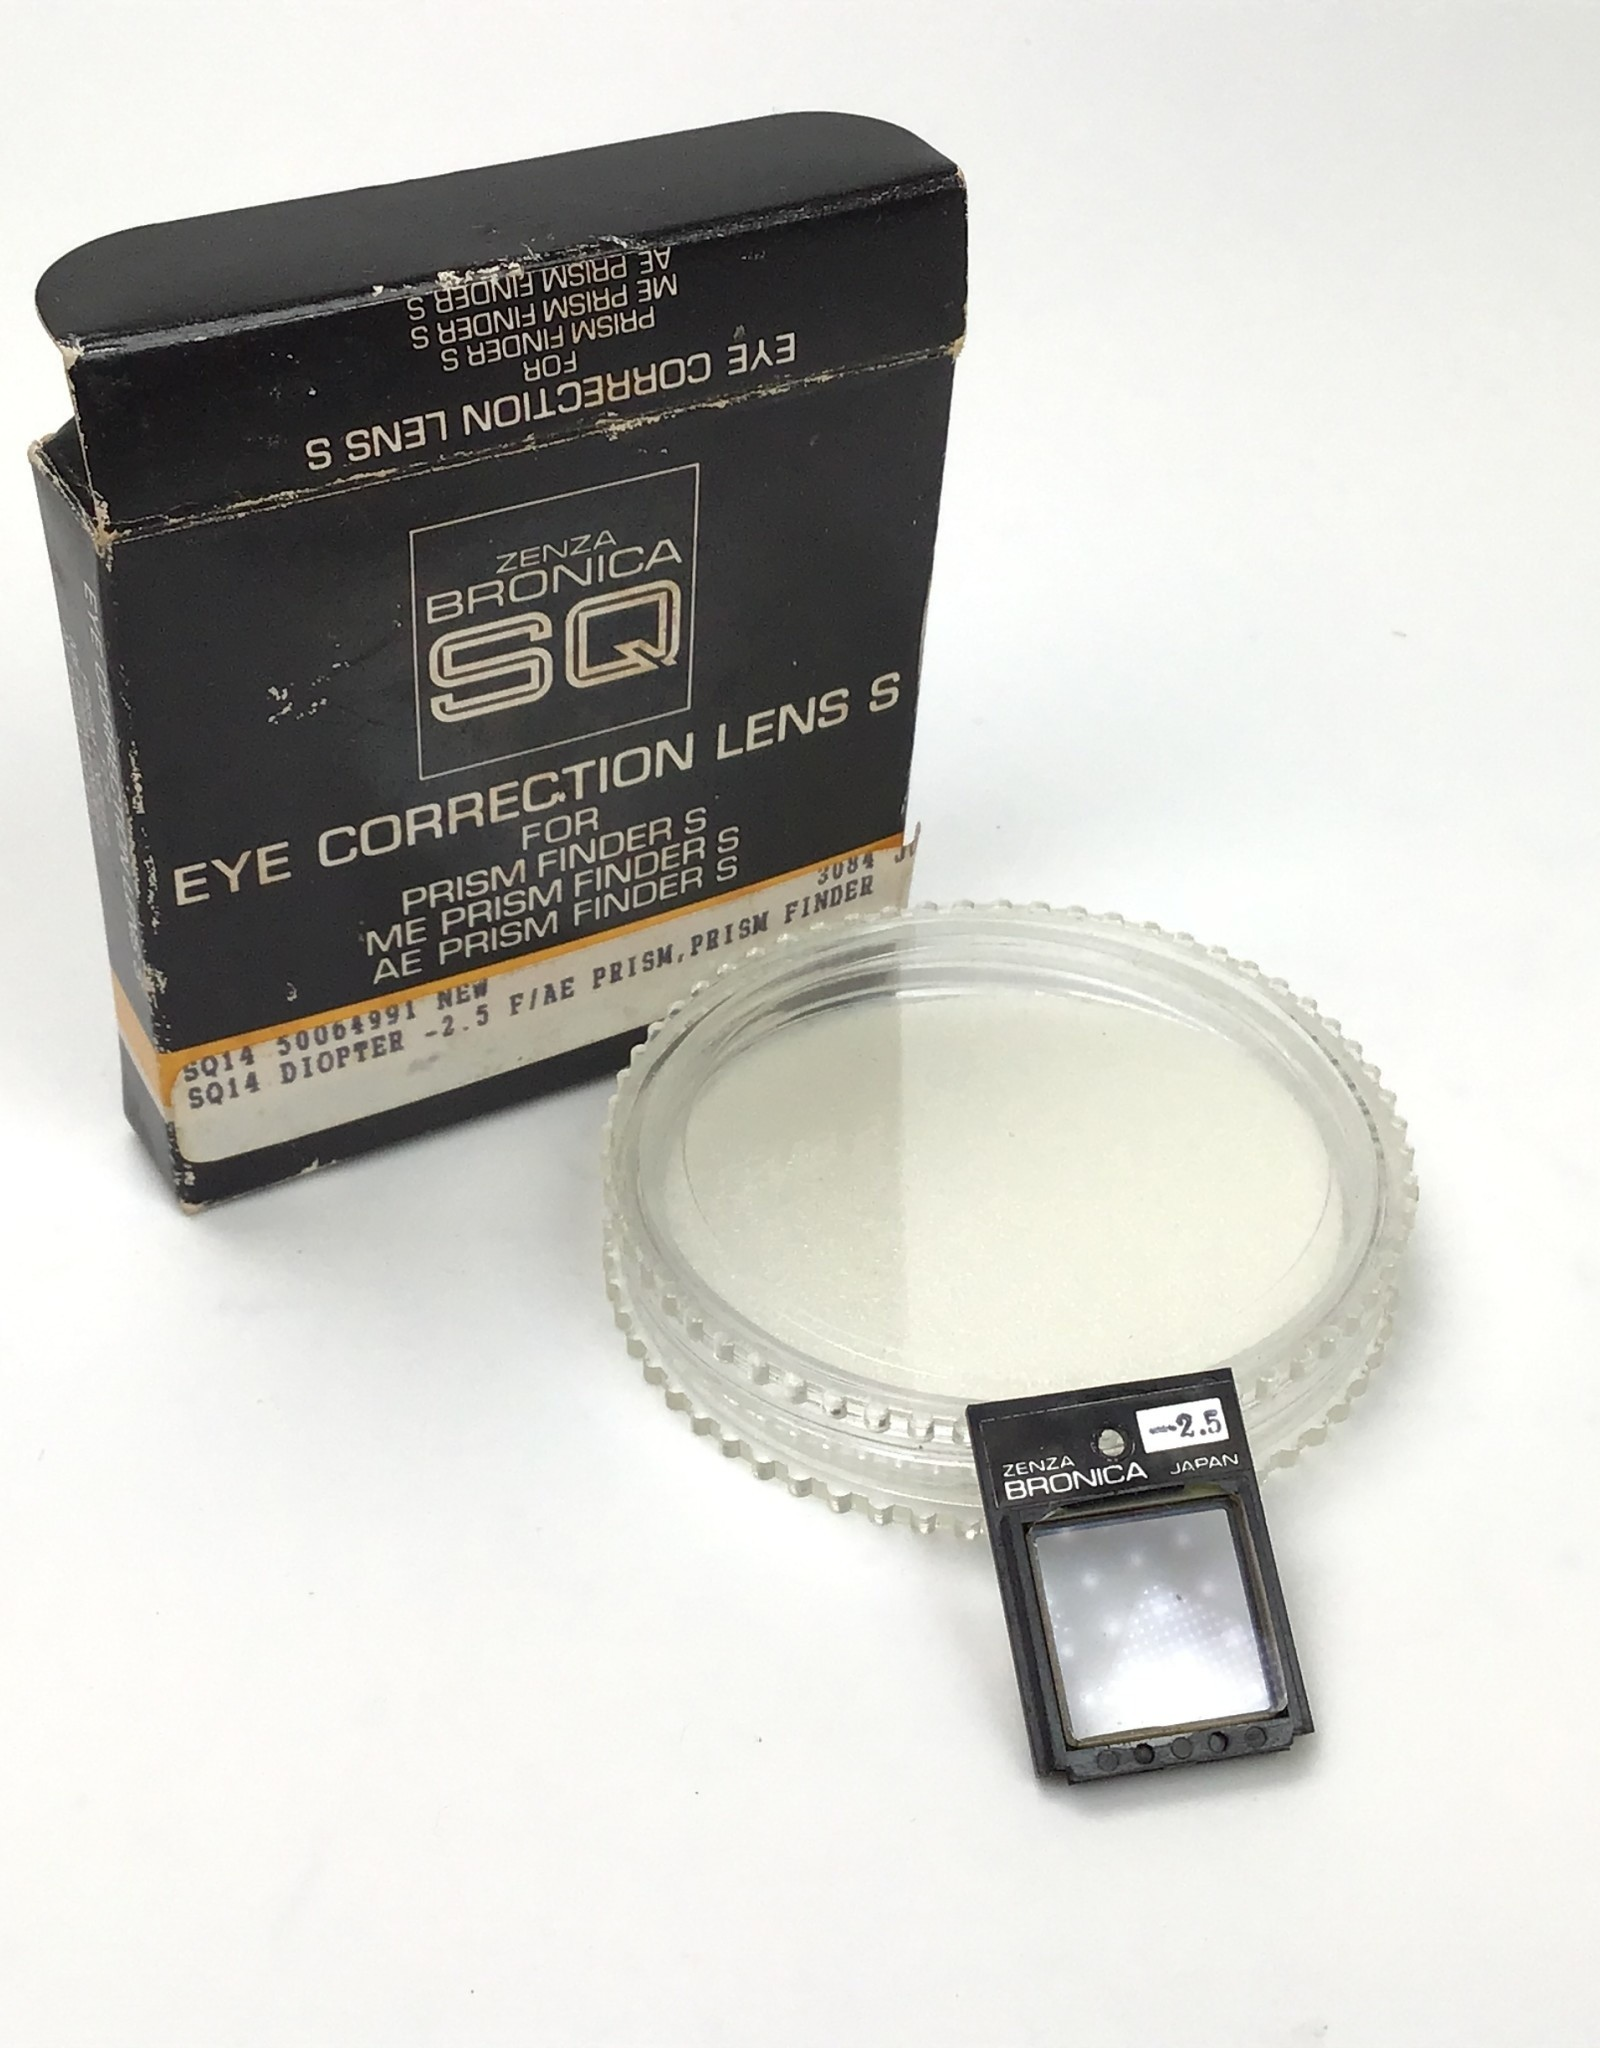 Bronica Bronica Eye Correction Lens S -2.5 In Box Used EX